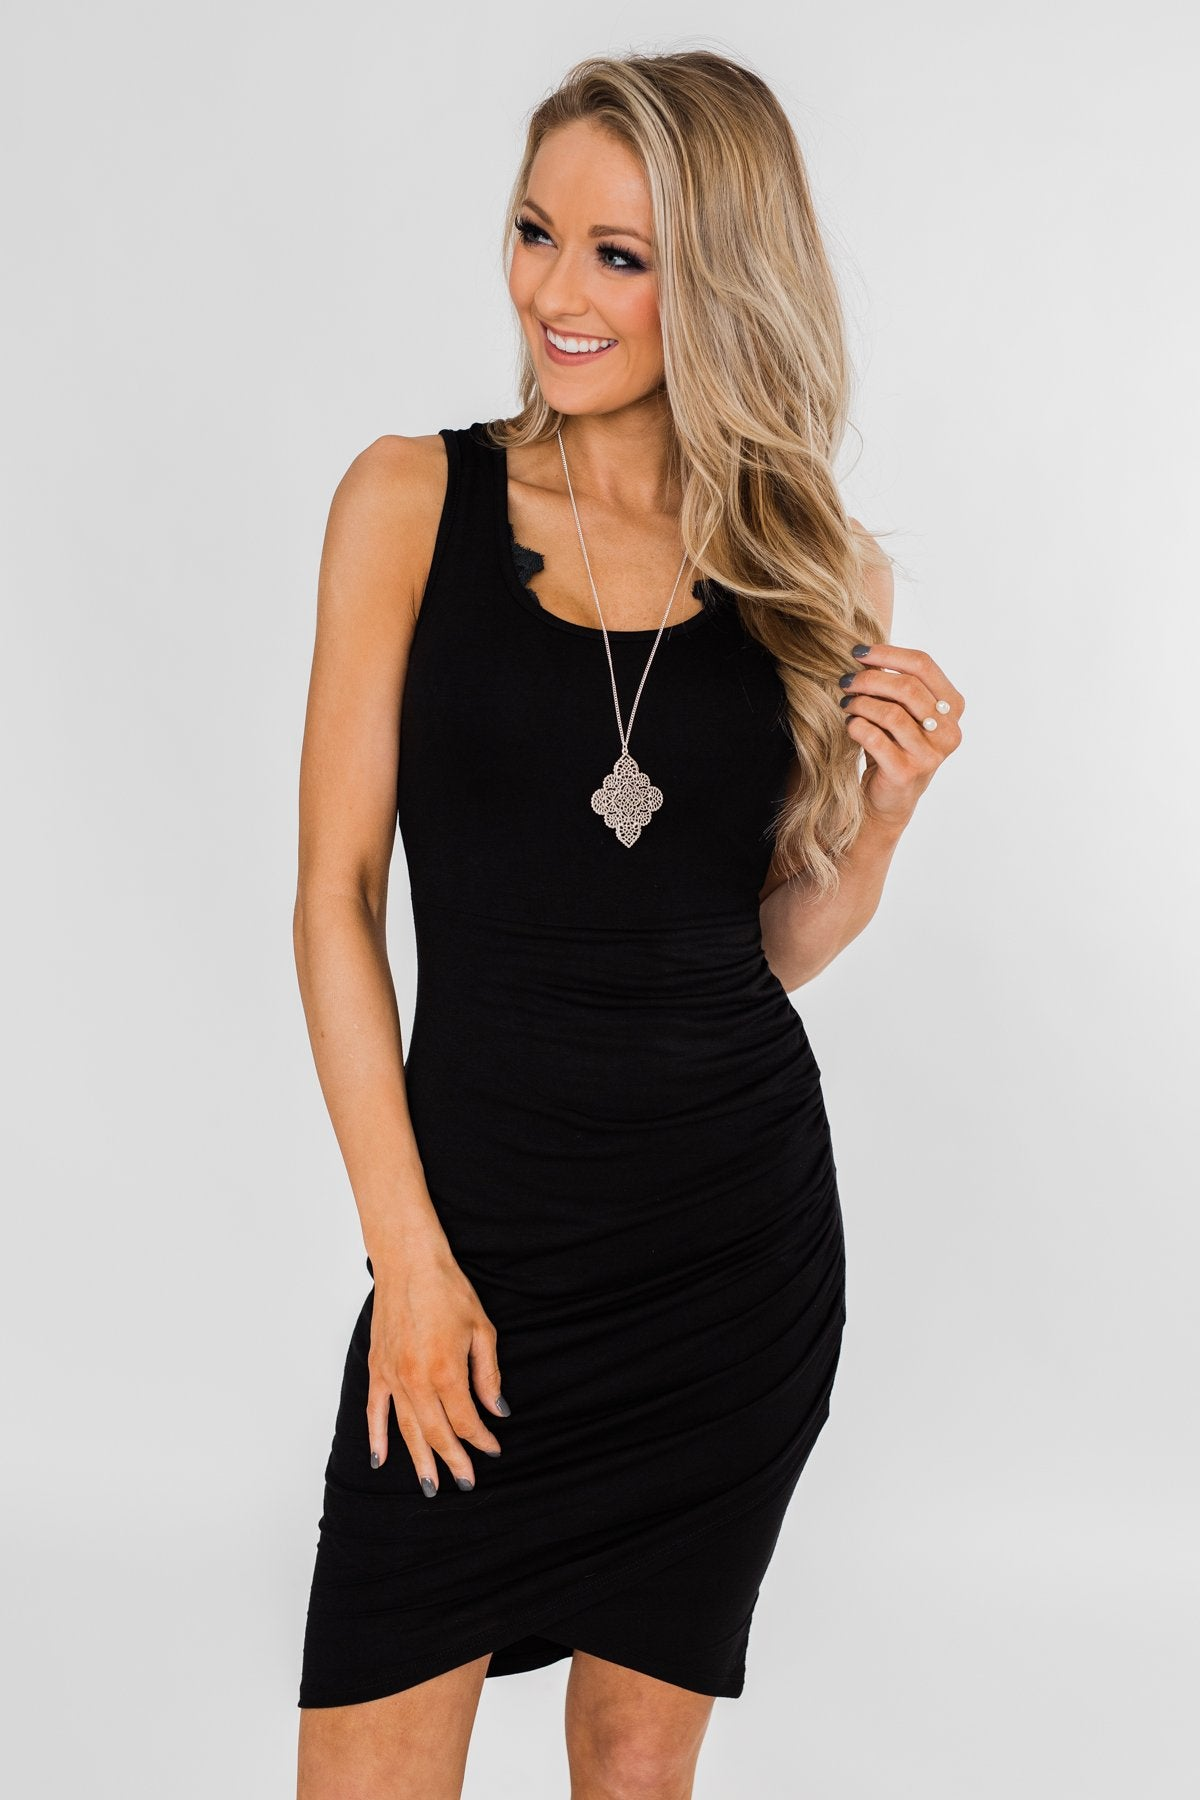 Make It Chic Fitted Dress- Solid Black